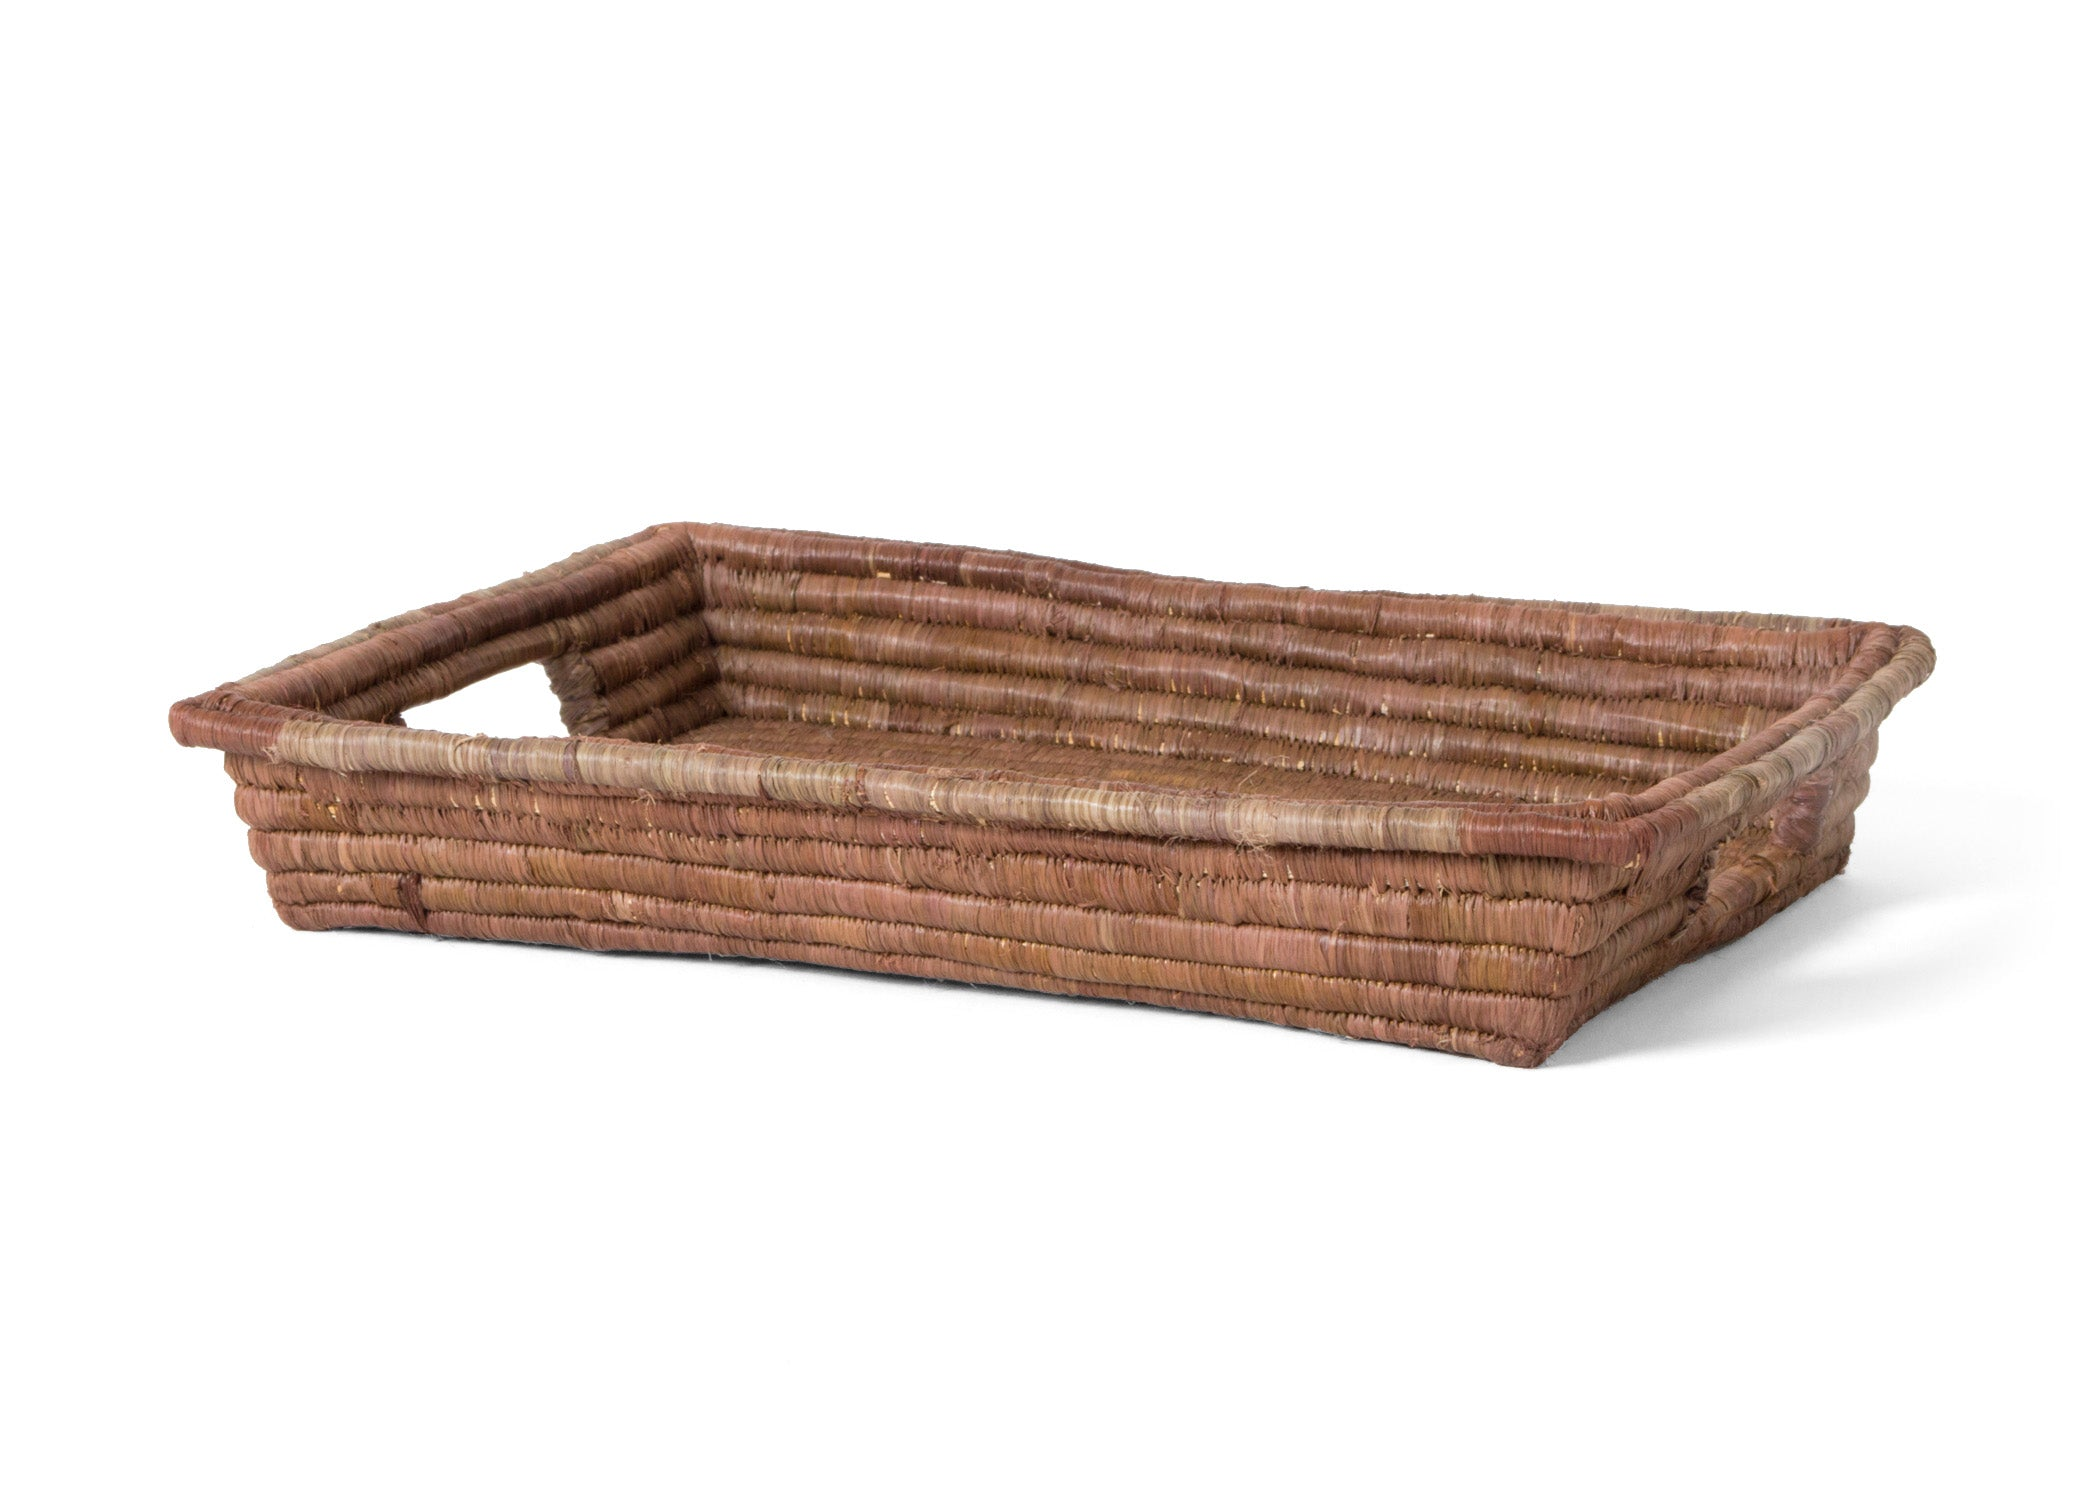 Chocolate Rectangular Raffia Tray - KAZI - Artisan made high quality home decor and wall art